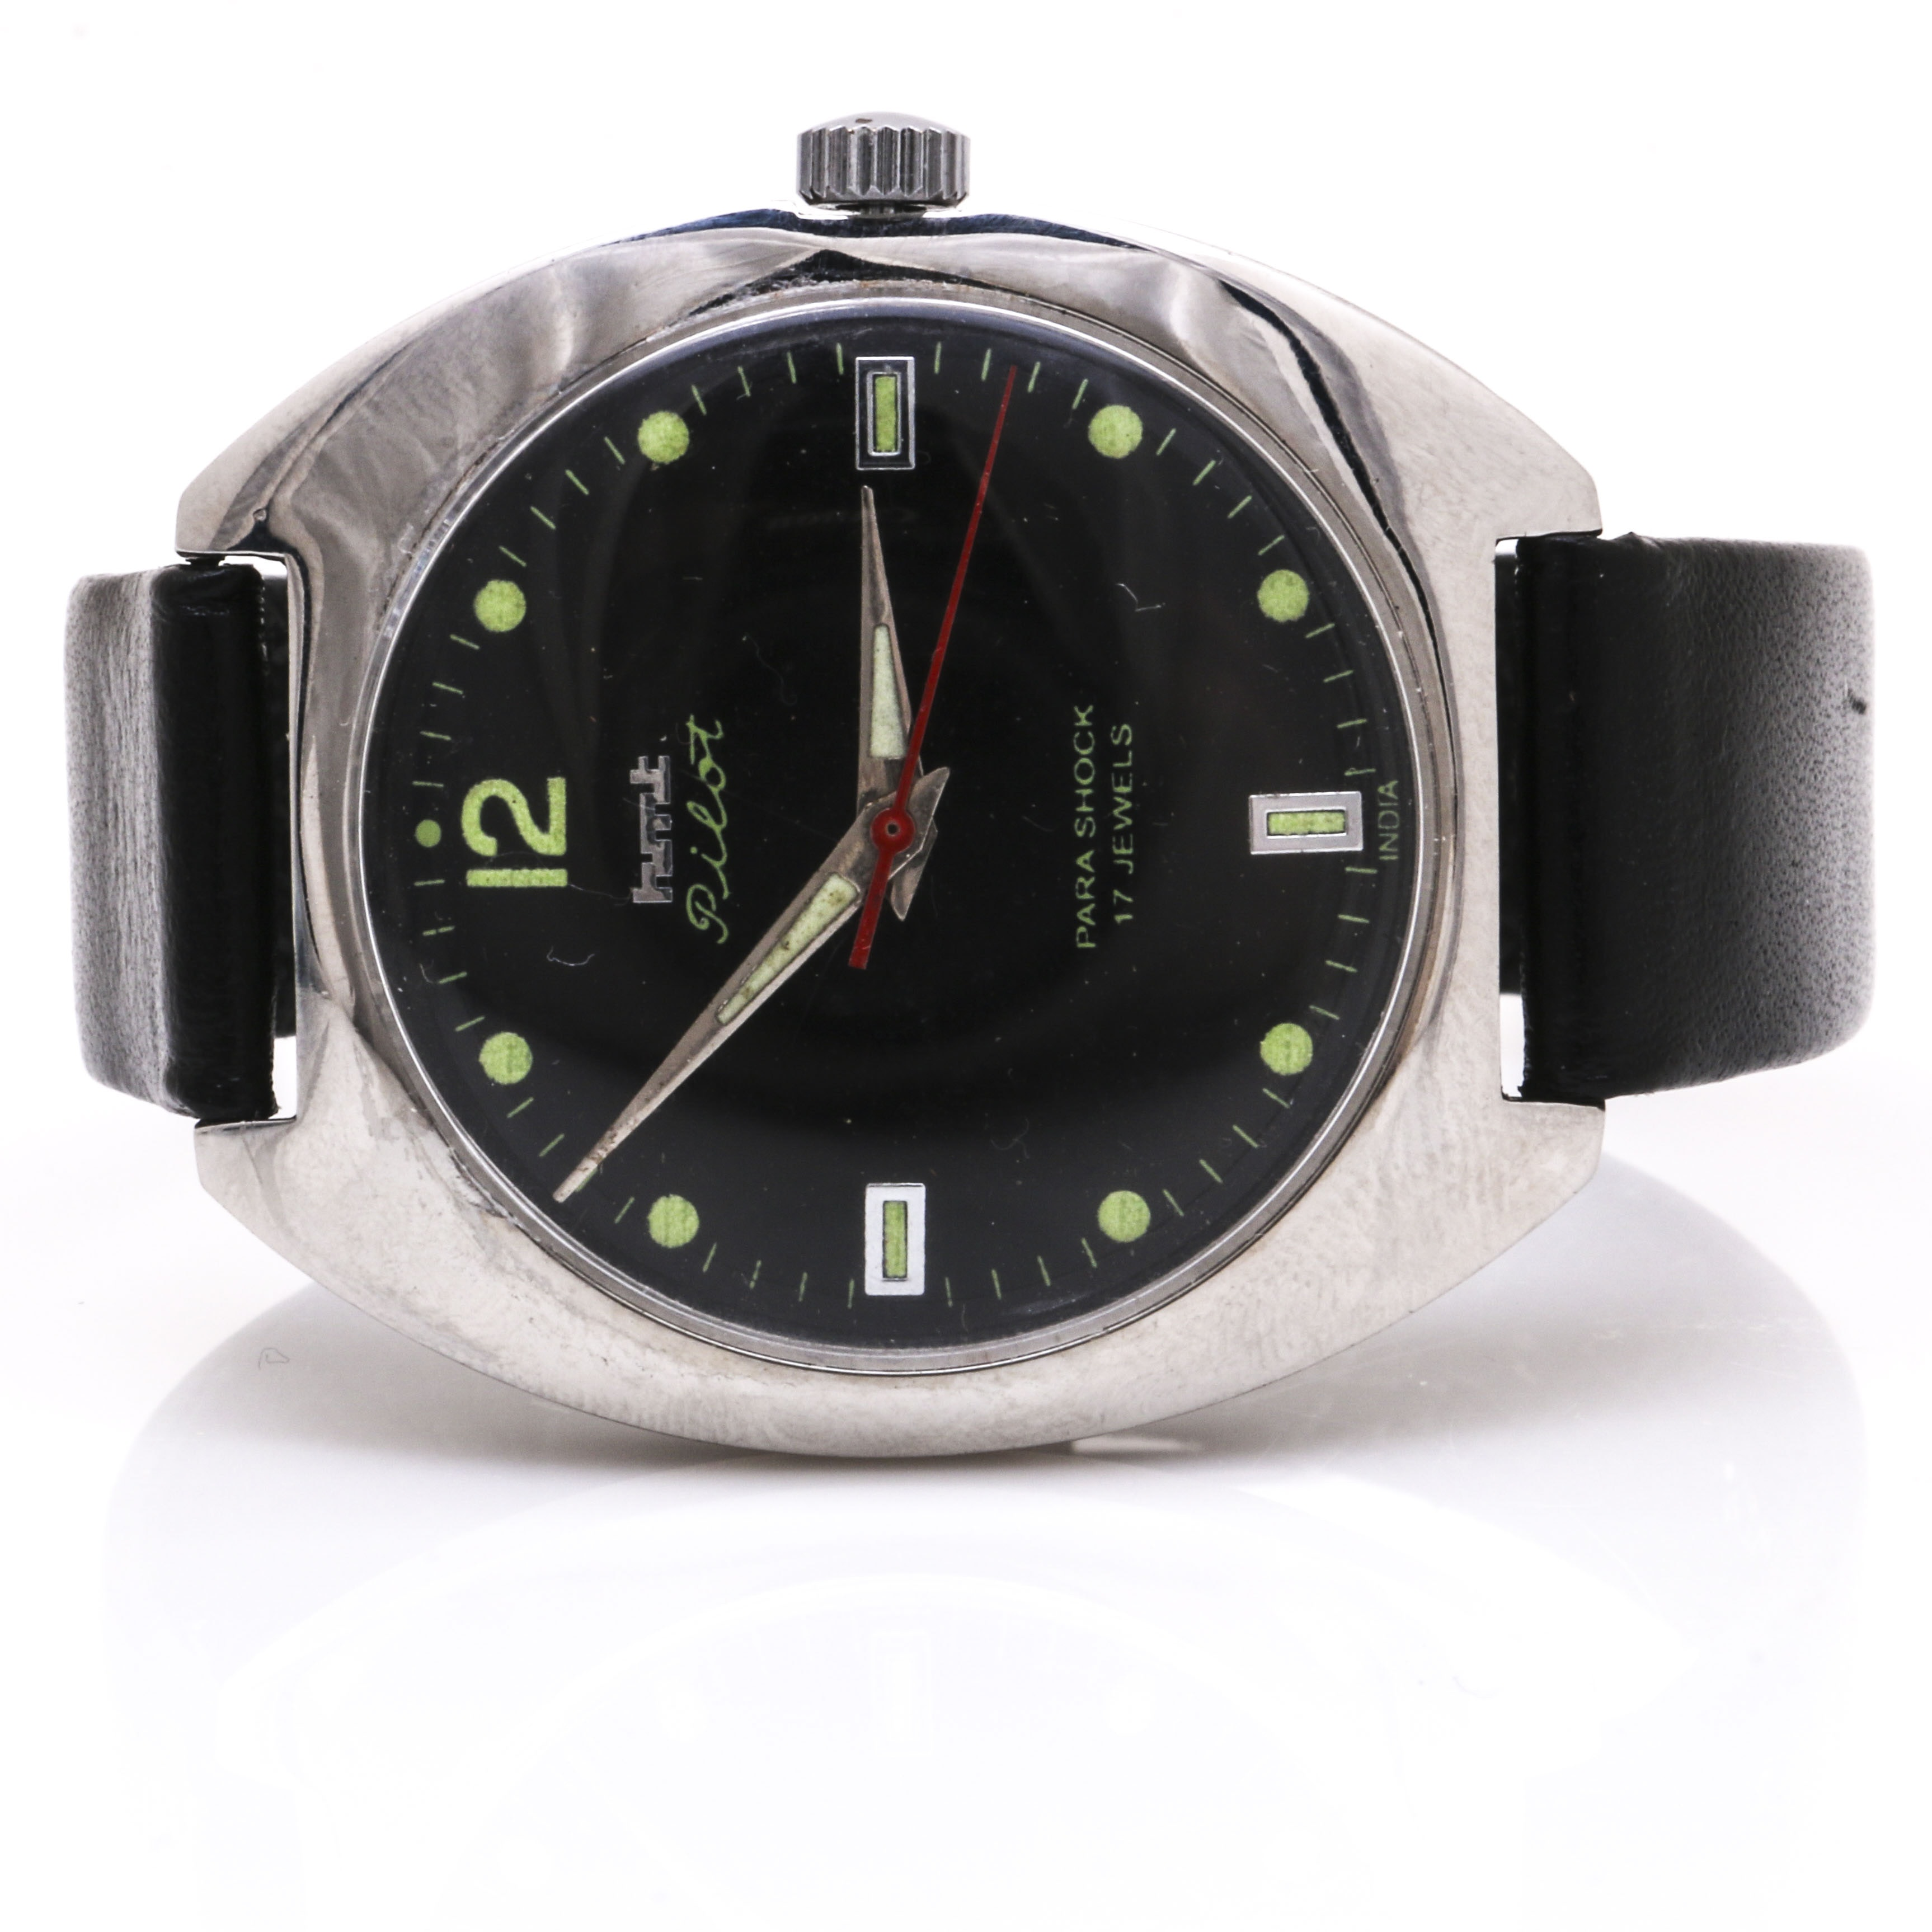 HMT Pilot Stainless Steel Wristwatch